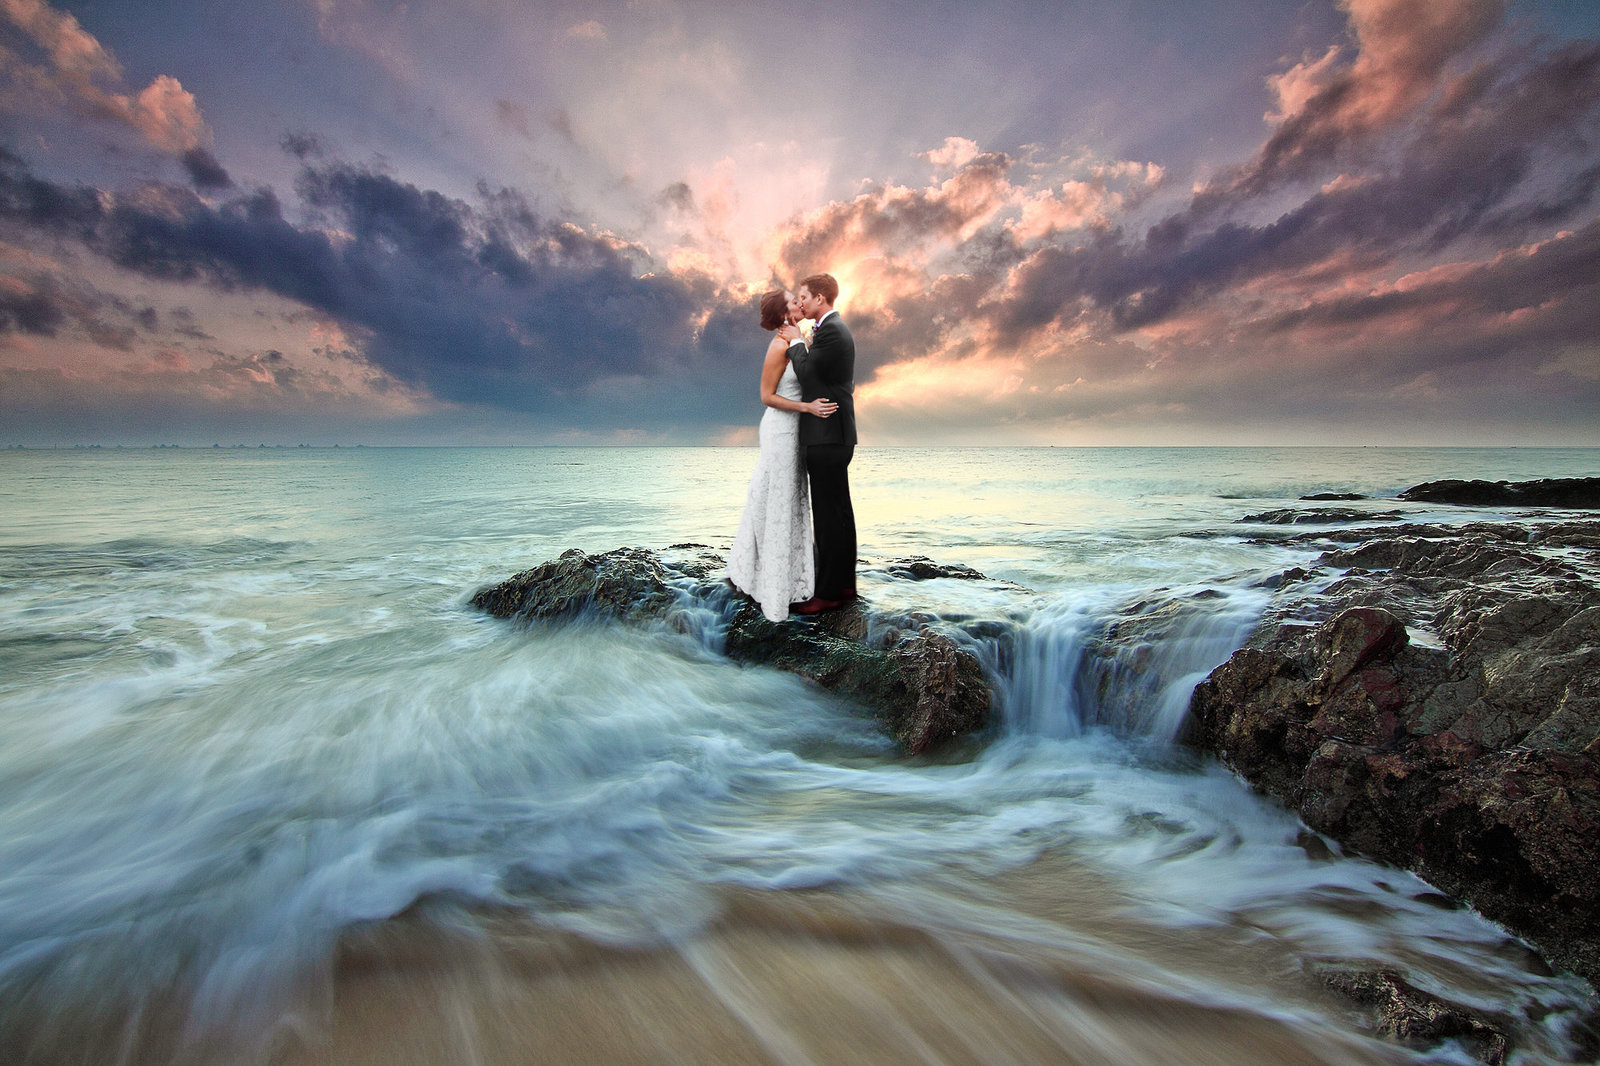 sunset-surreal-portrait-session-luma-weddings-1